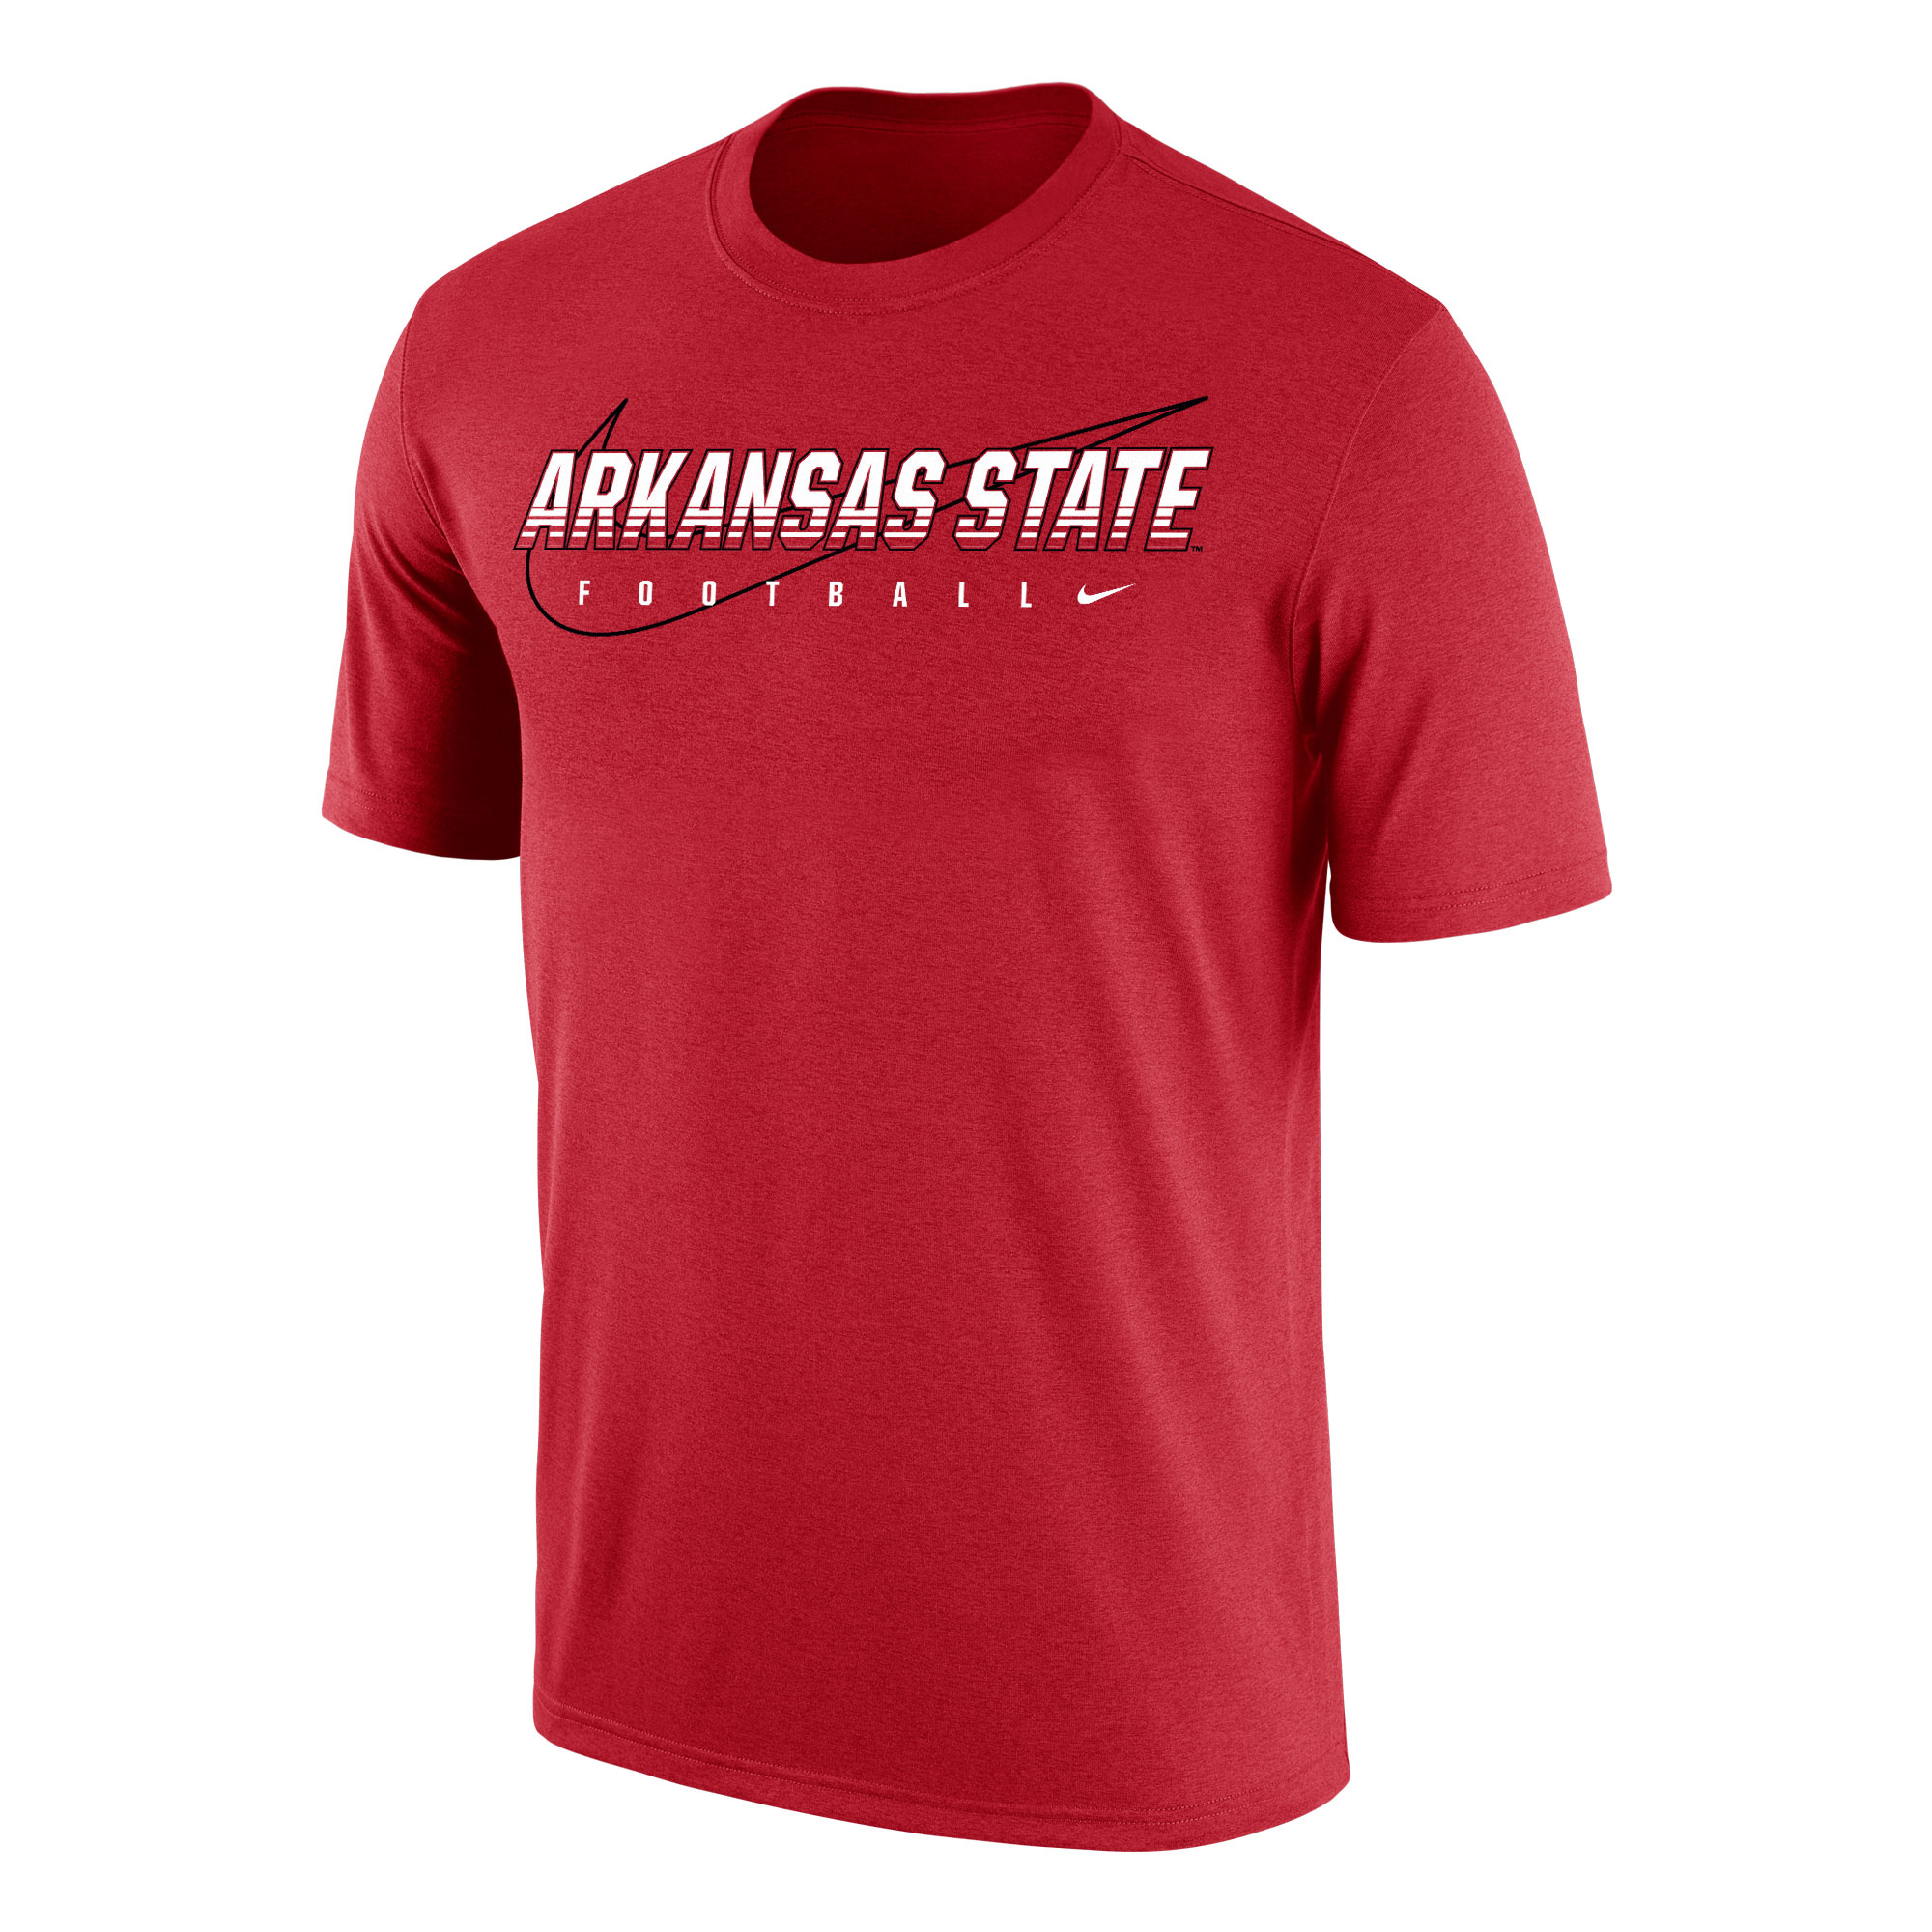 Arkansas State Football Dri-FIT Cotton SS Tee